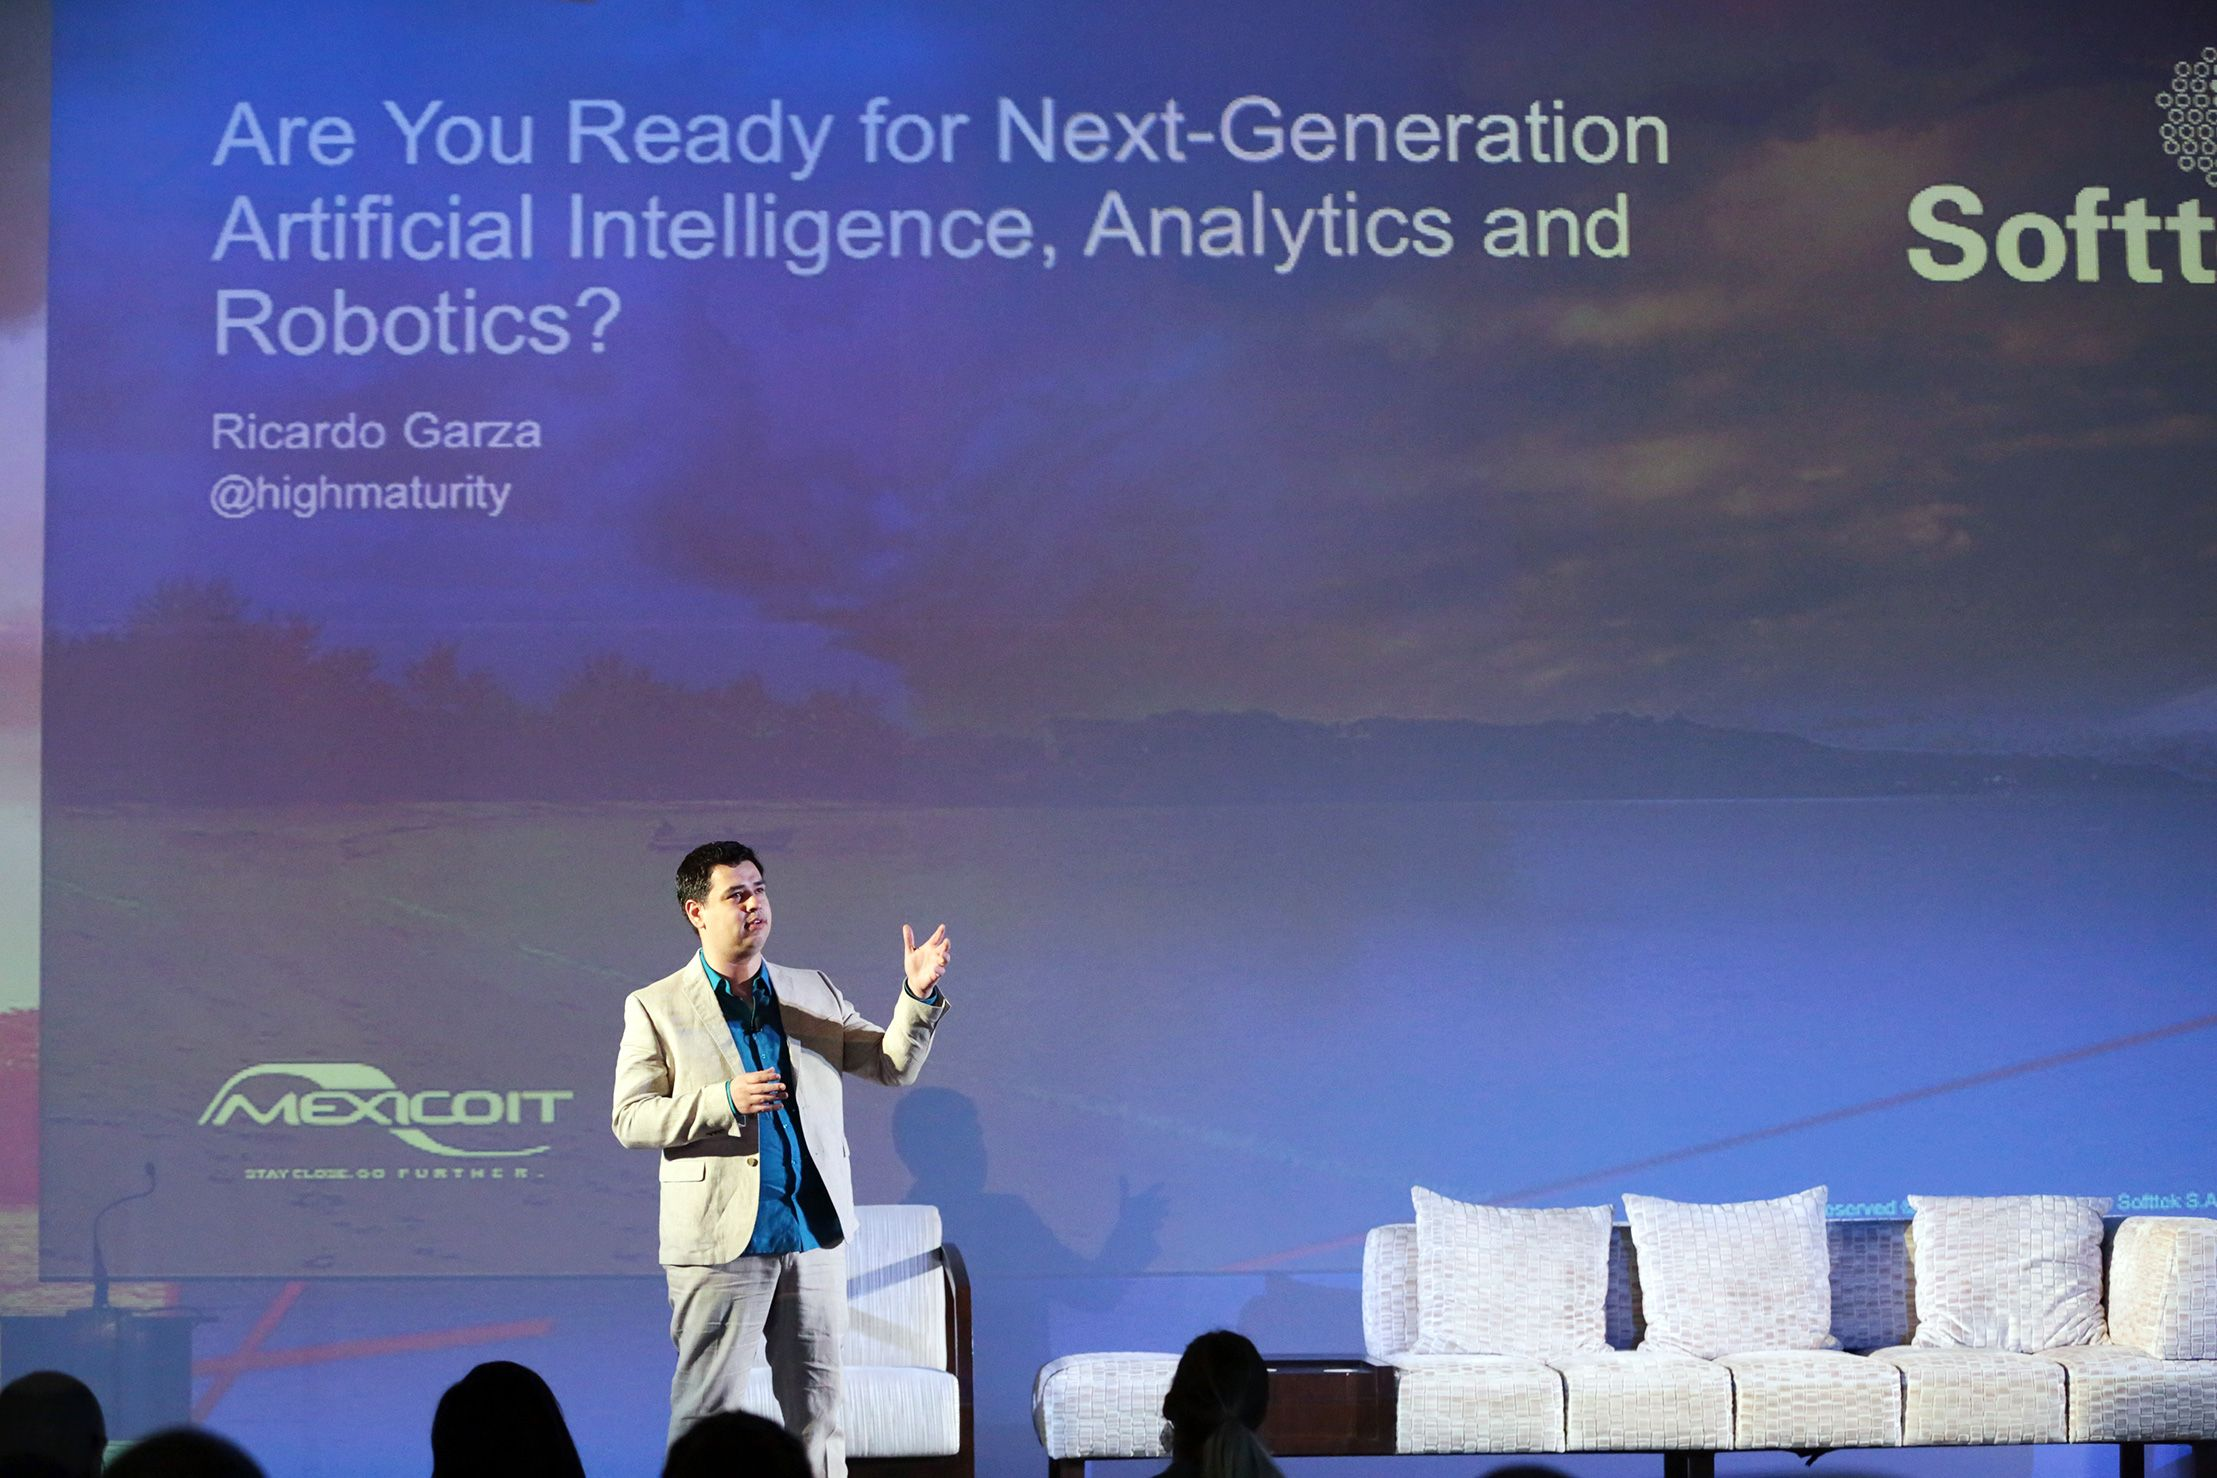 Are You Ready for Next Generation Artificial Intelligence, Analytics and Robotics? By Ricardo Garza, Director, Operations Innovation, Softtek. Friday, February 19th 2016, Digital Innovation Summit